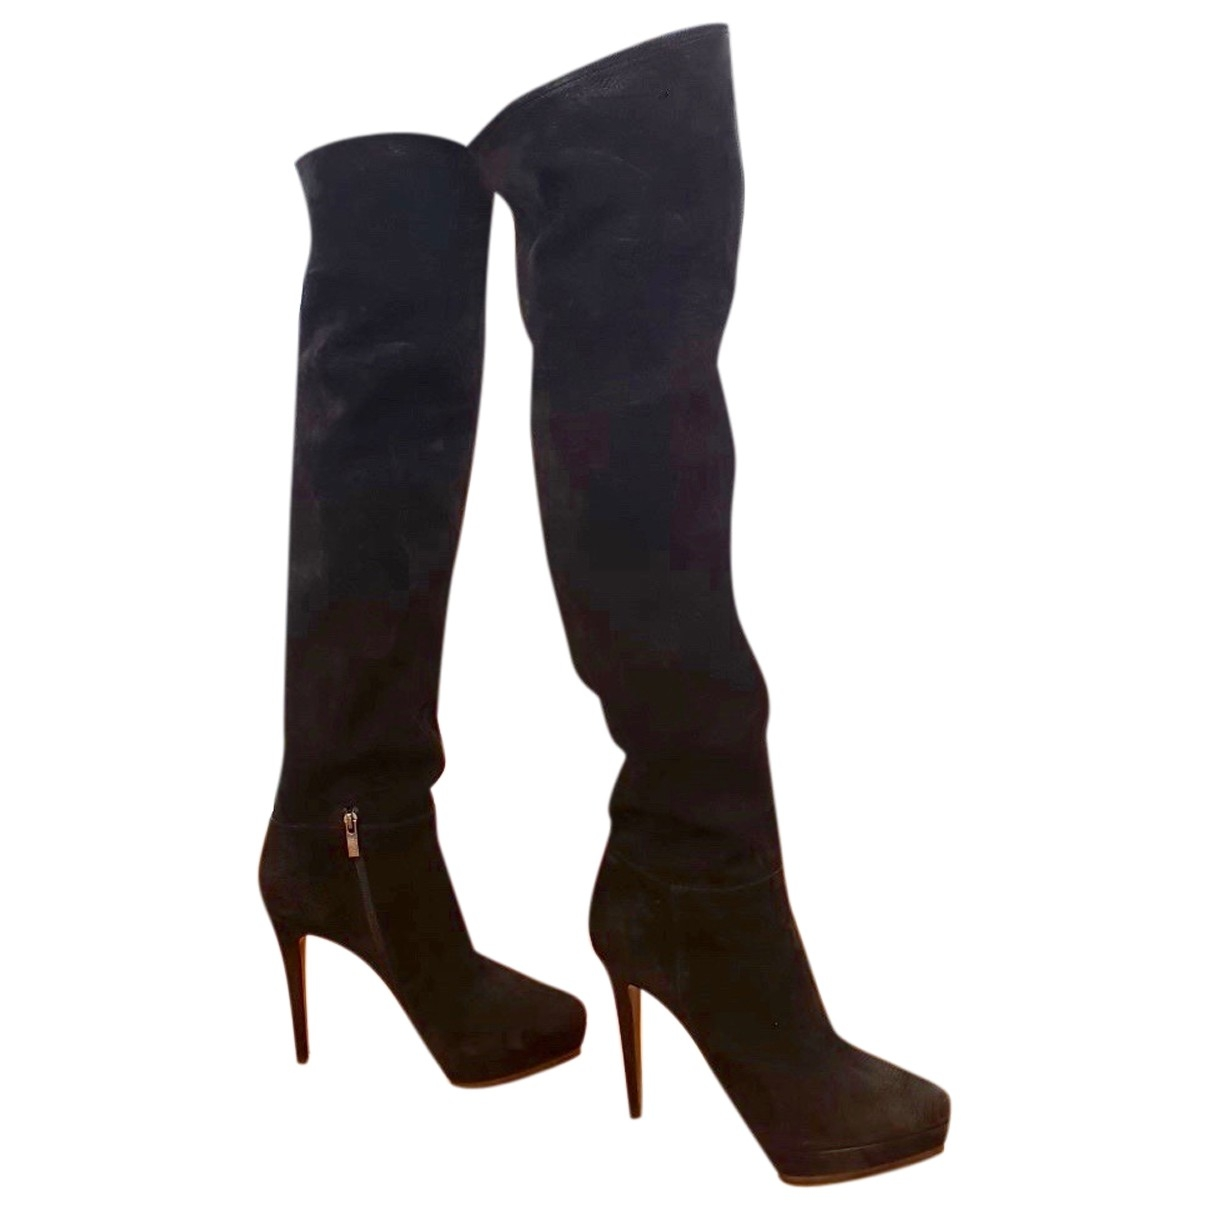 Le Silla \N Black Leather Boots for Women 37.5 EU